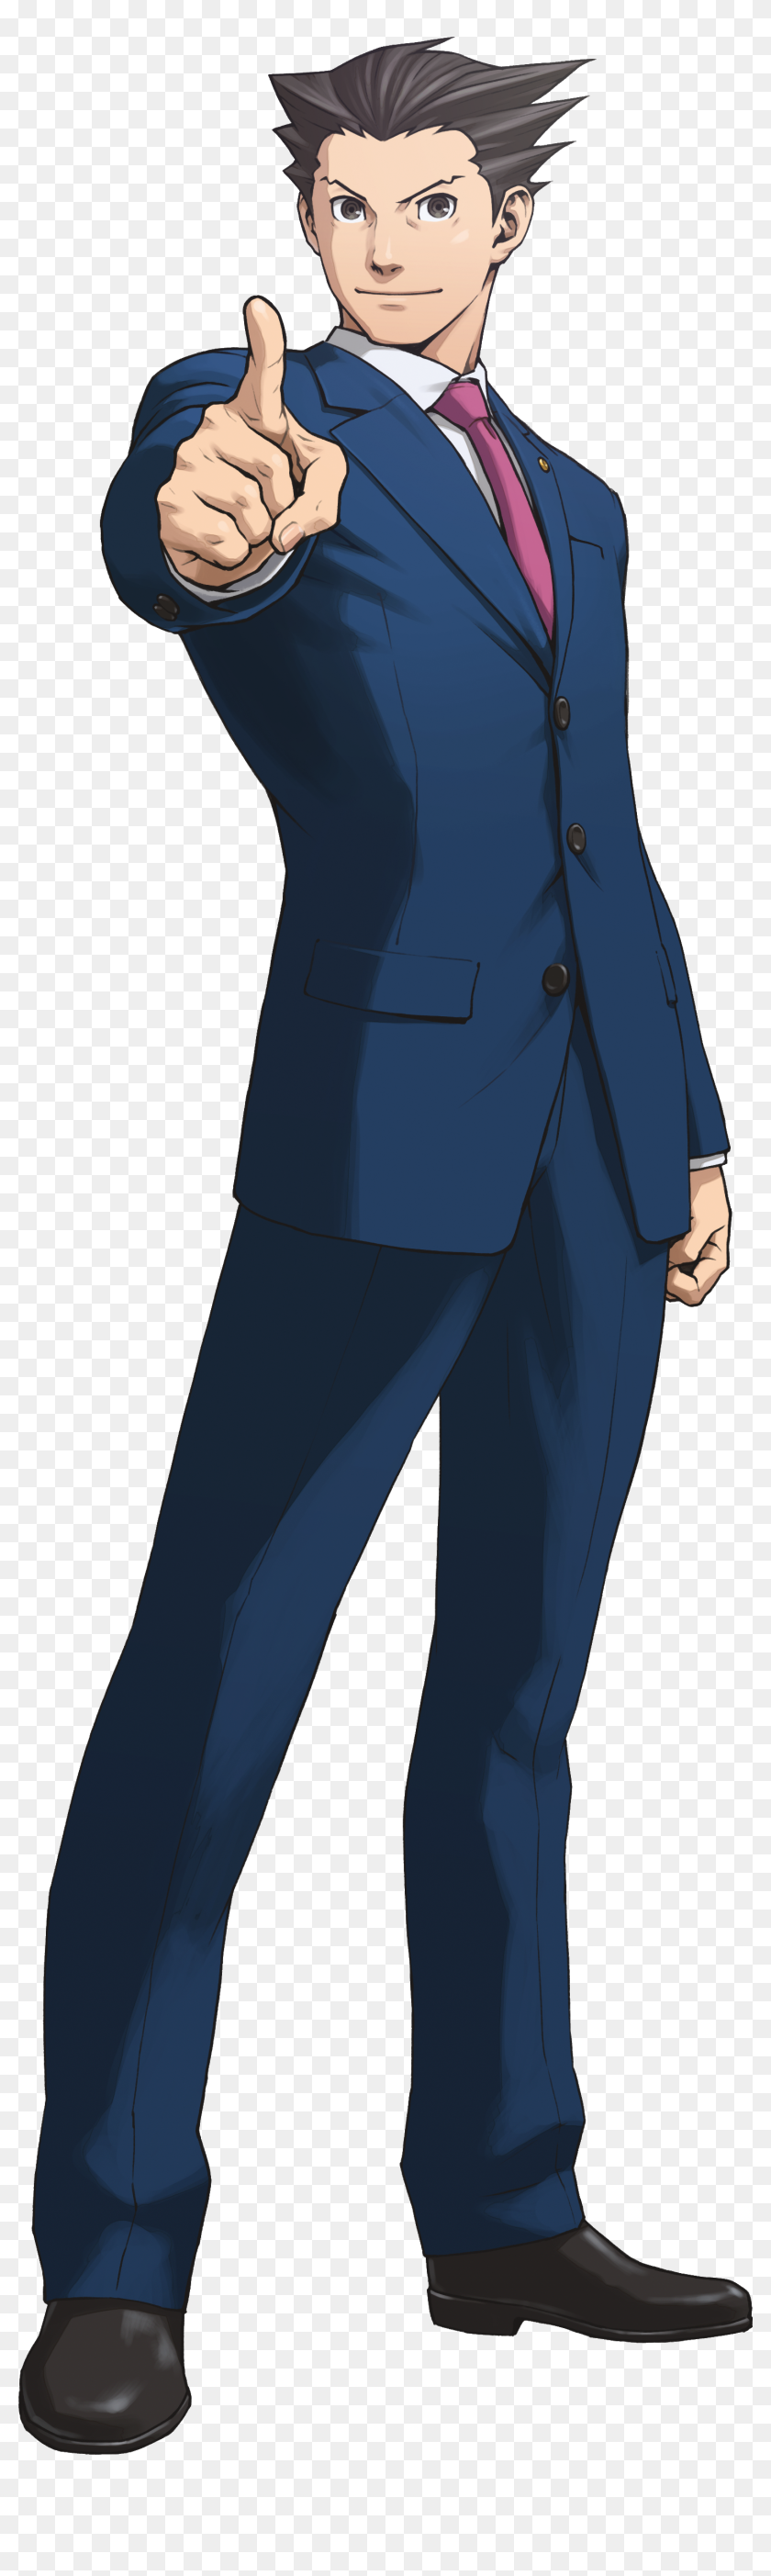 Ace Attorney Png Phoenix Wright Heroes Transparent Png